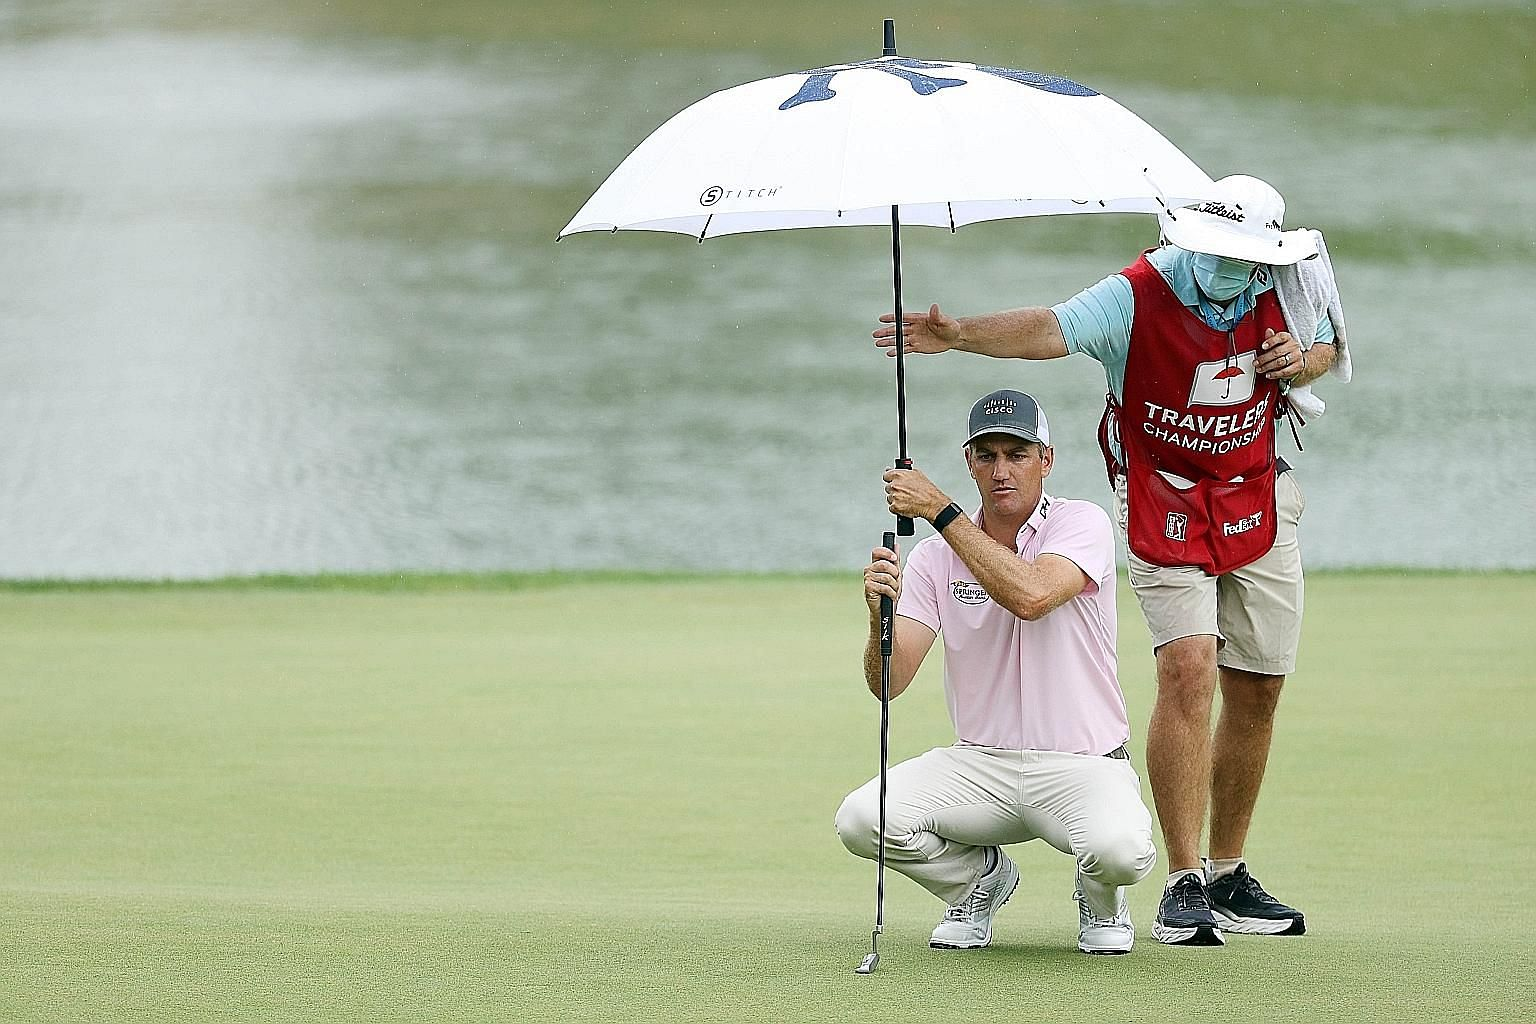 American Brendon Todd fired a nine-under 61 in Saturday's third round of the Travelers Championship. It was the lowest round of his PGA Tour career and he was seeking to become the first three-time winner this season.